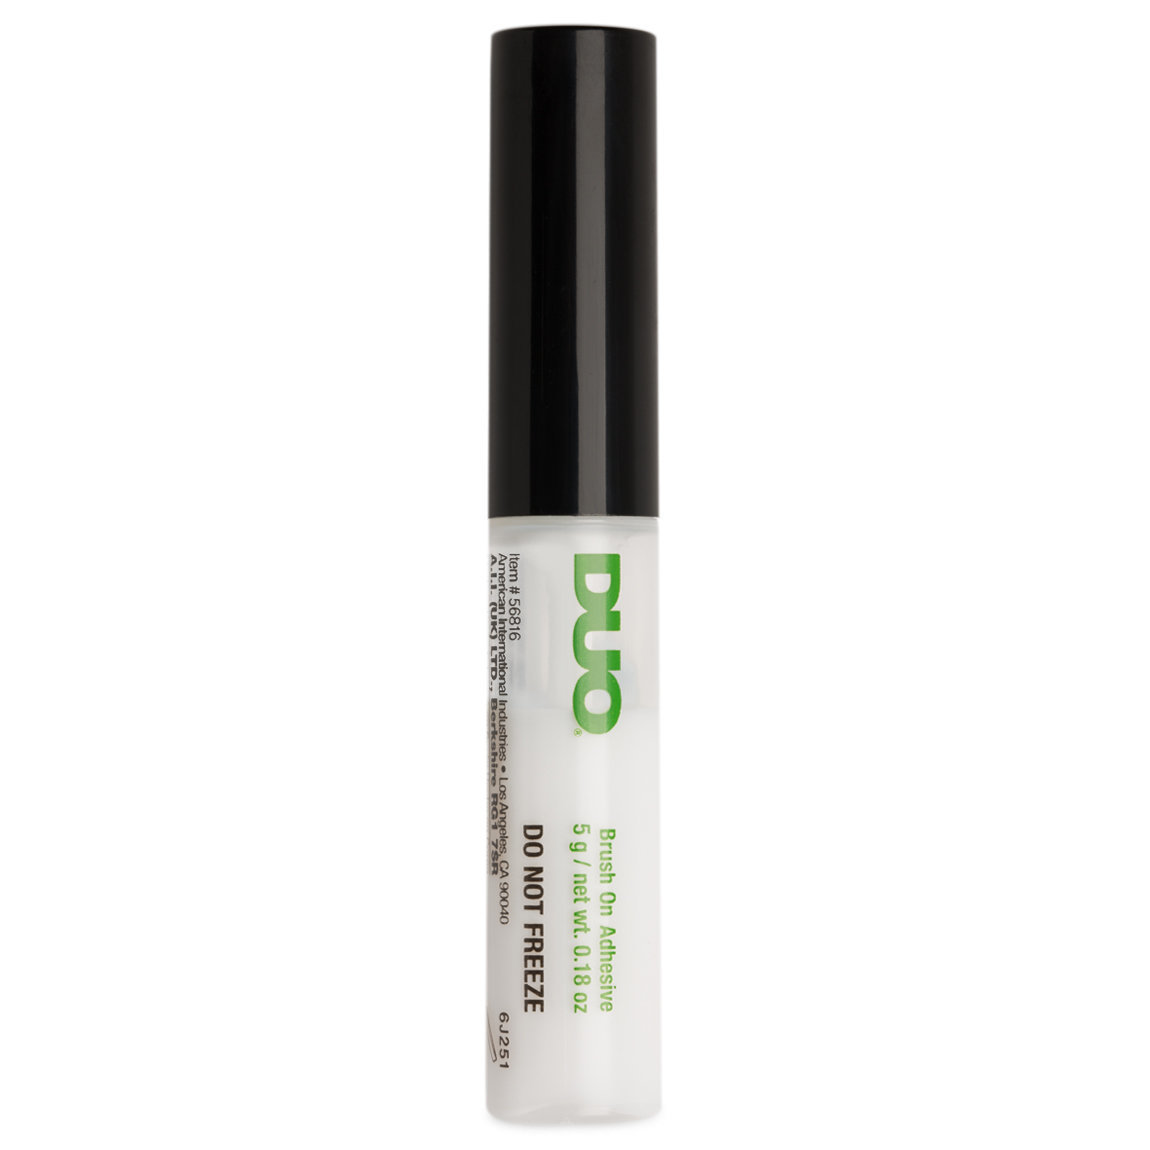 DUO Brush-on Adhesive With Vitamins Clear product swatch.